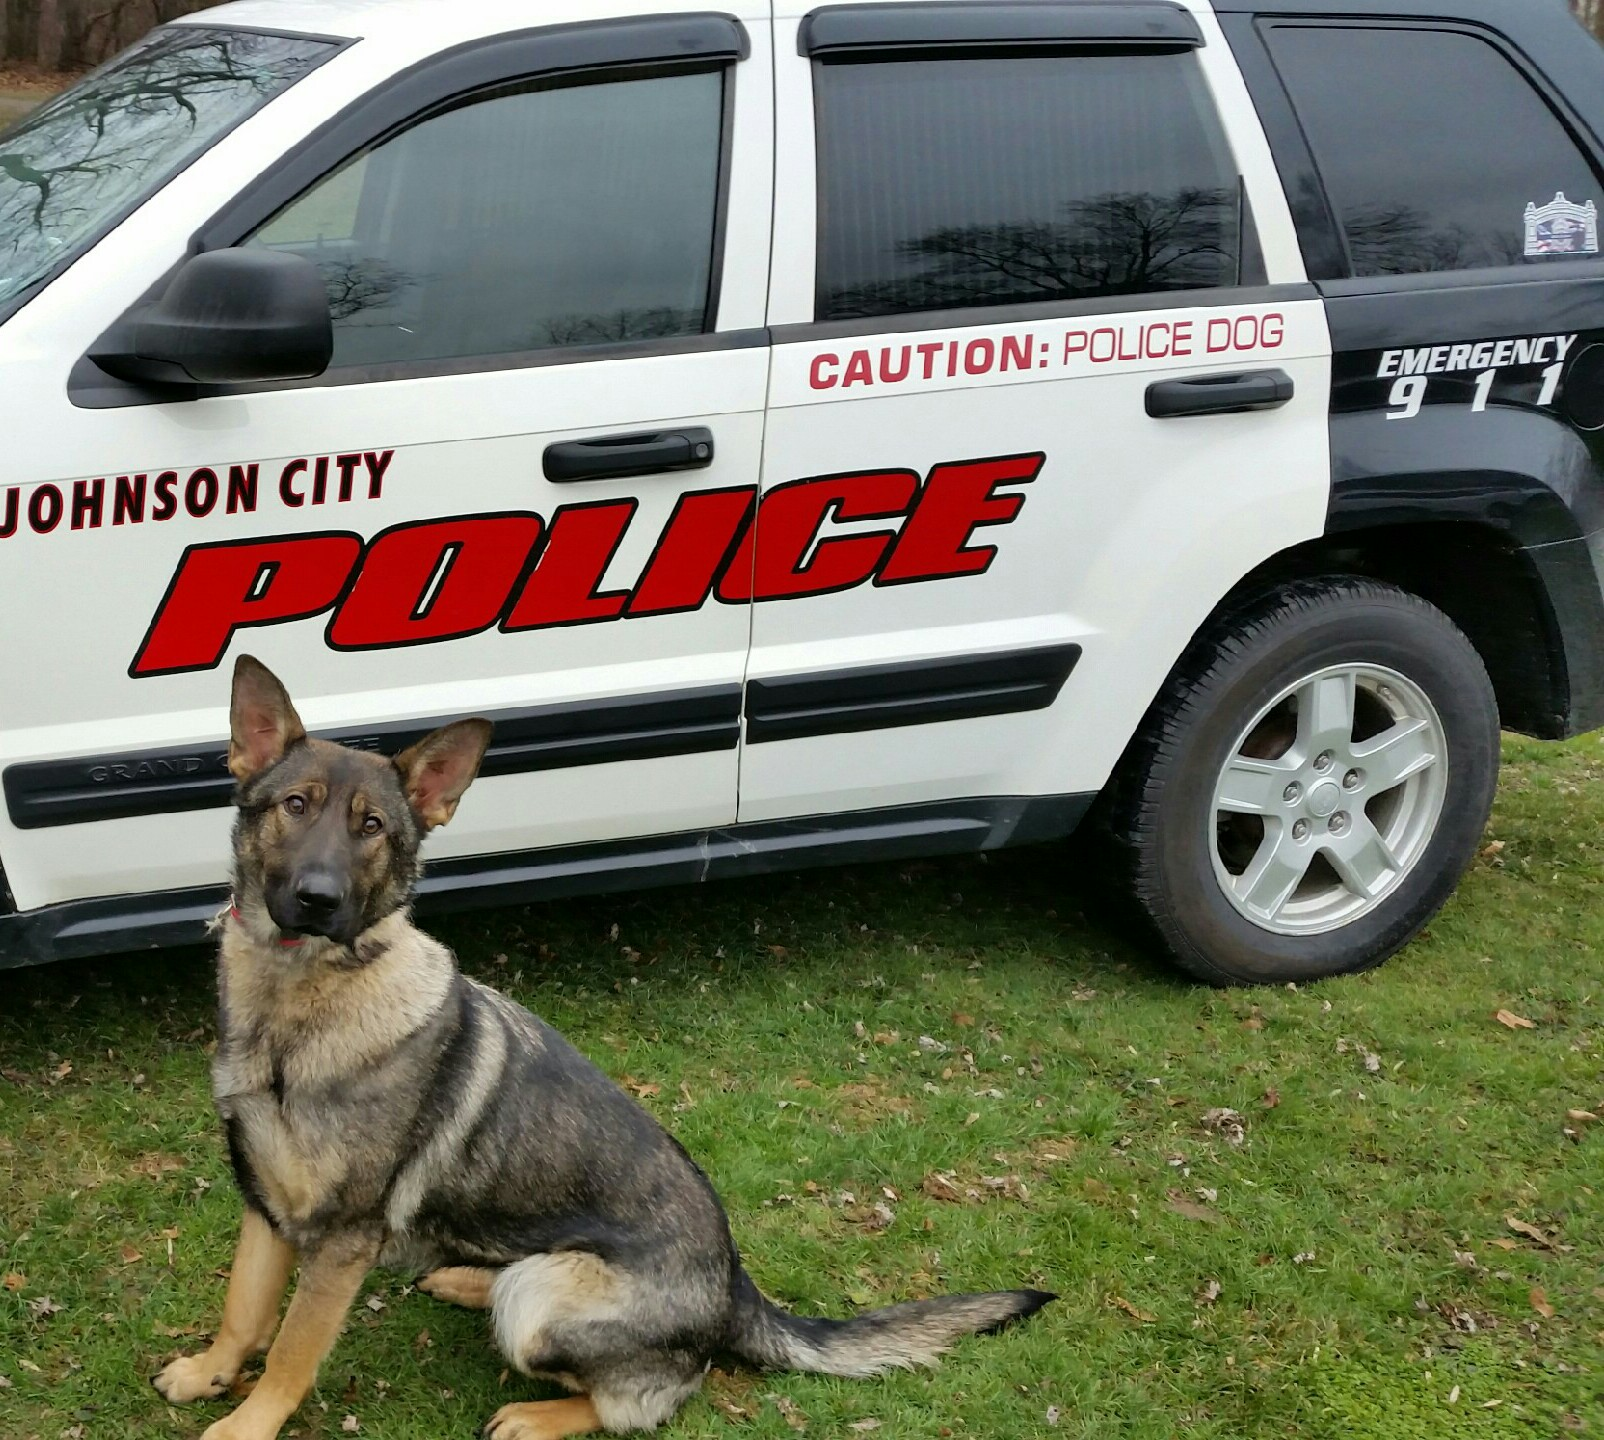 Partnered with Officer Daniel Gavin, 1.5 year old K9 Officer Anouk is the rookie of the Johnson City K9 unit.